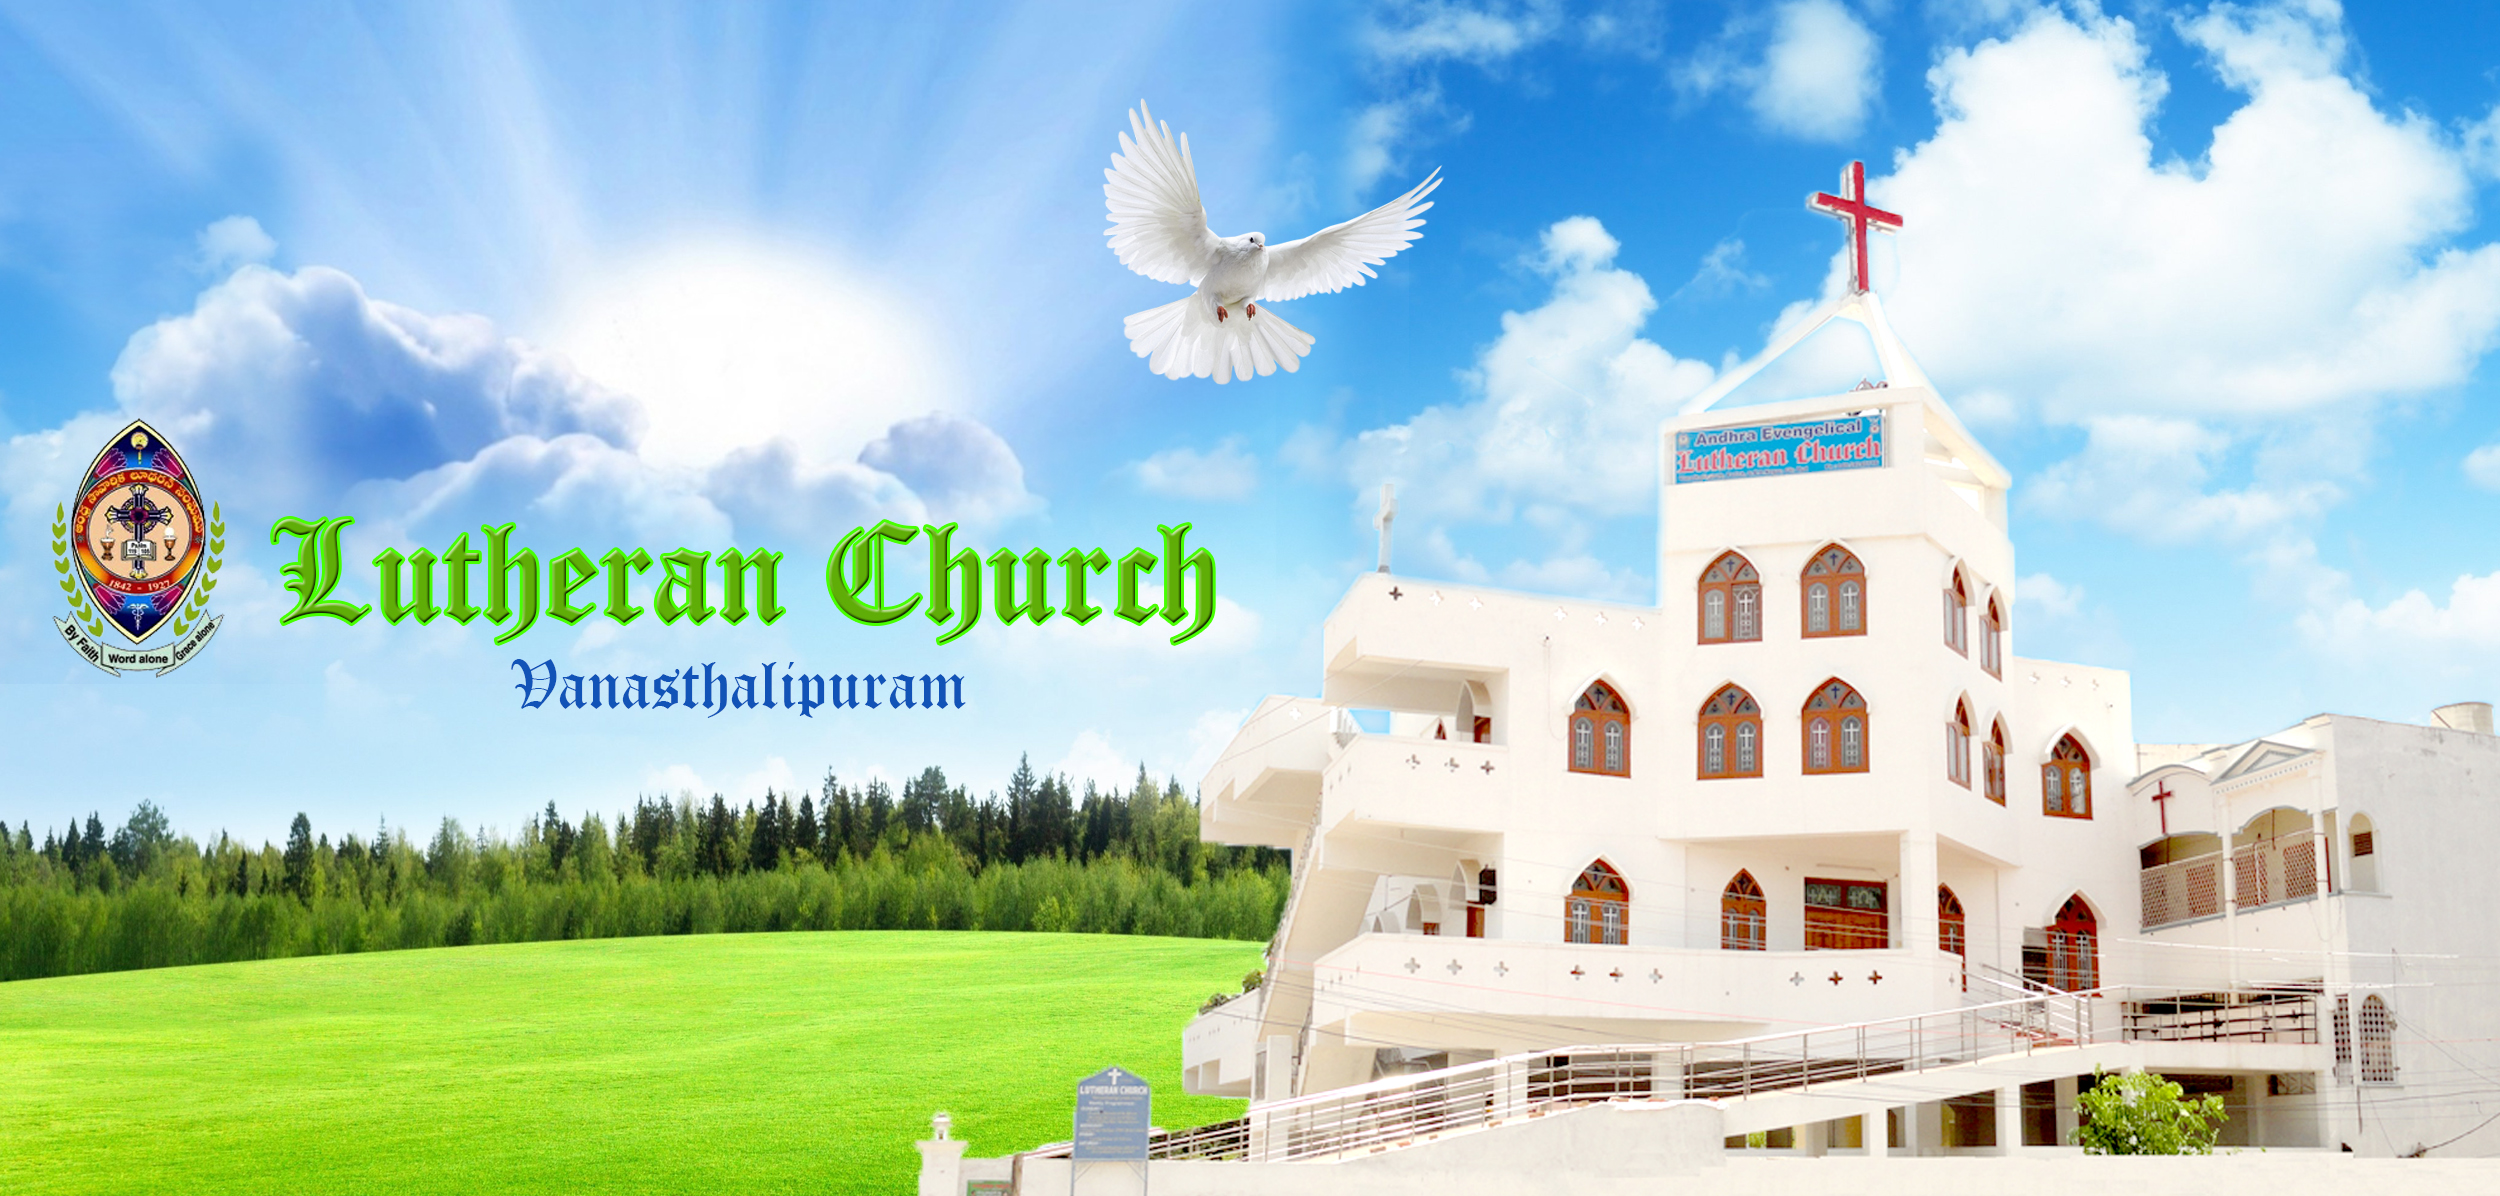 lutheran church vanasthalipuram hyderabad